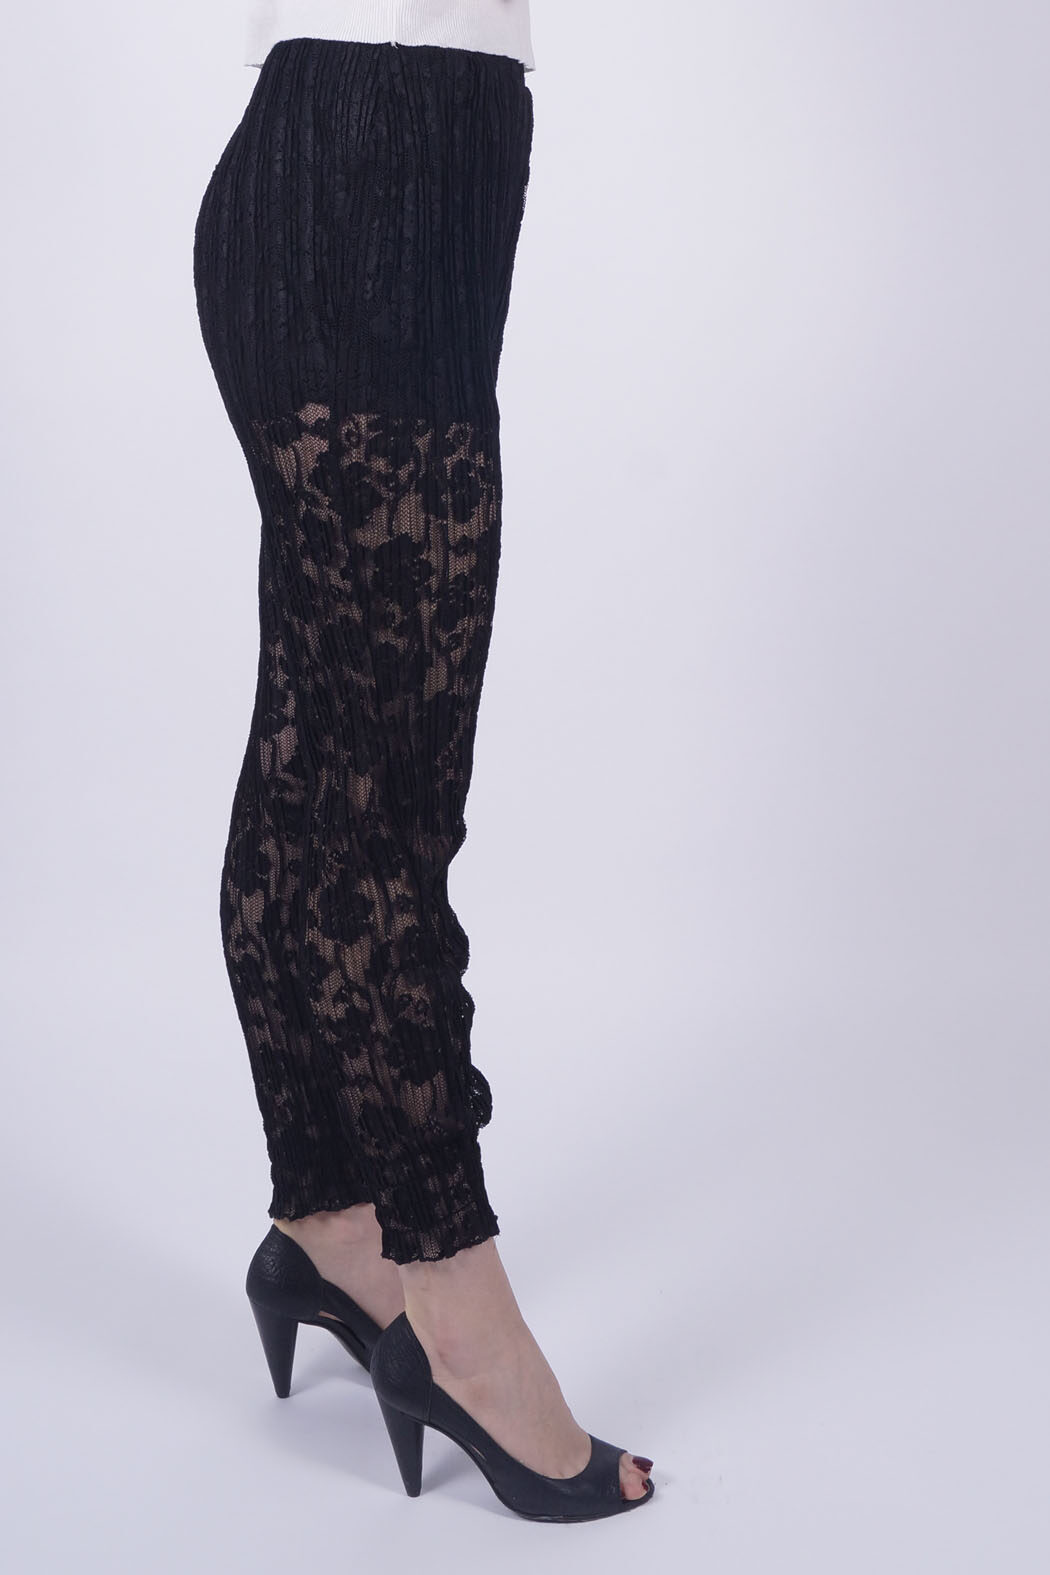 sally black lace